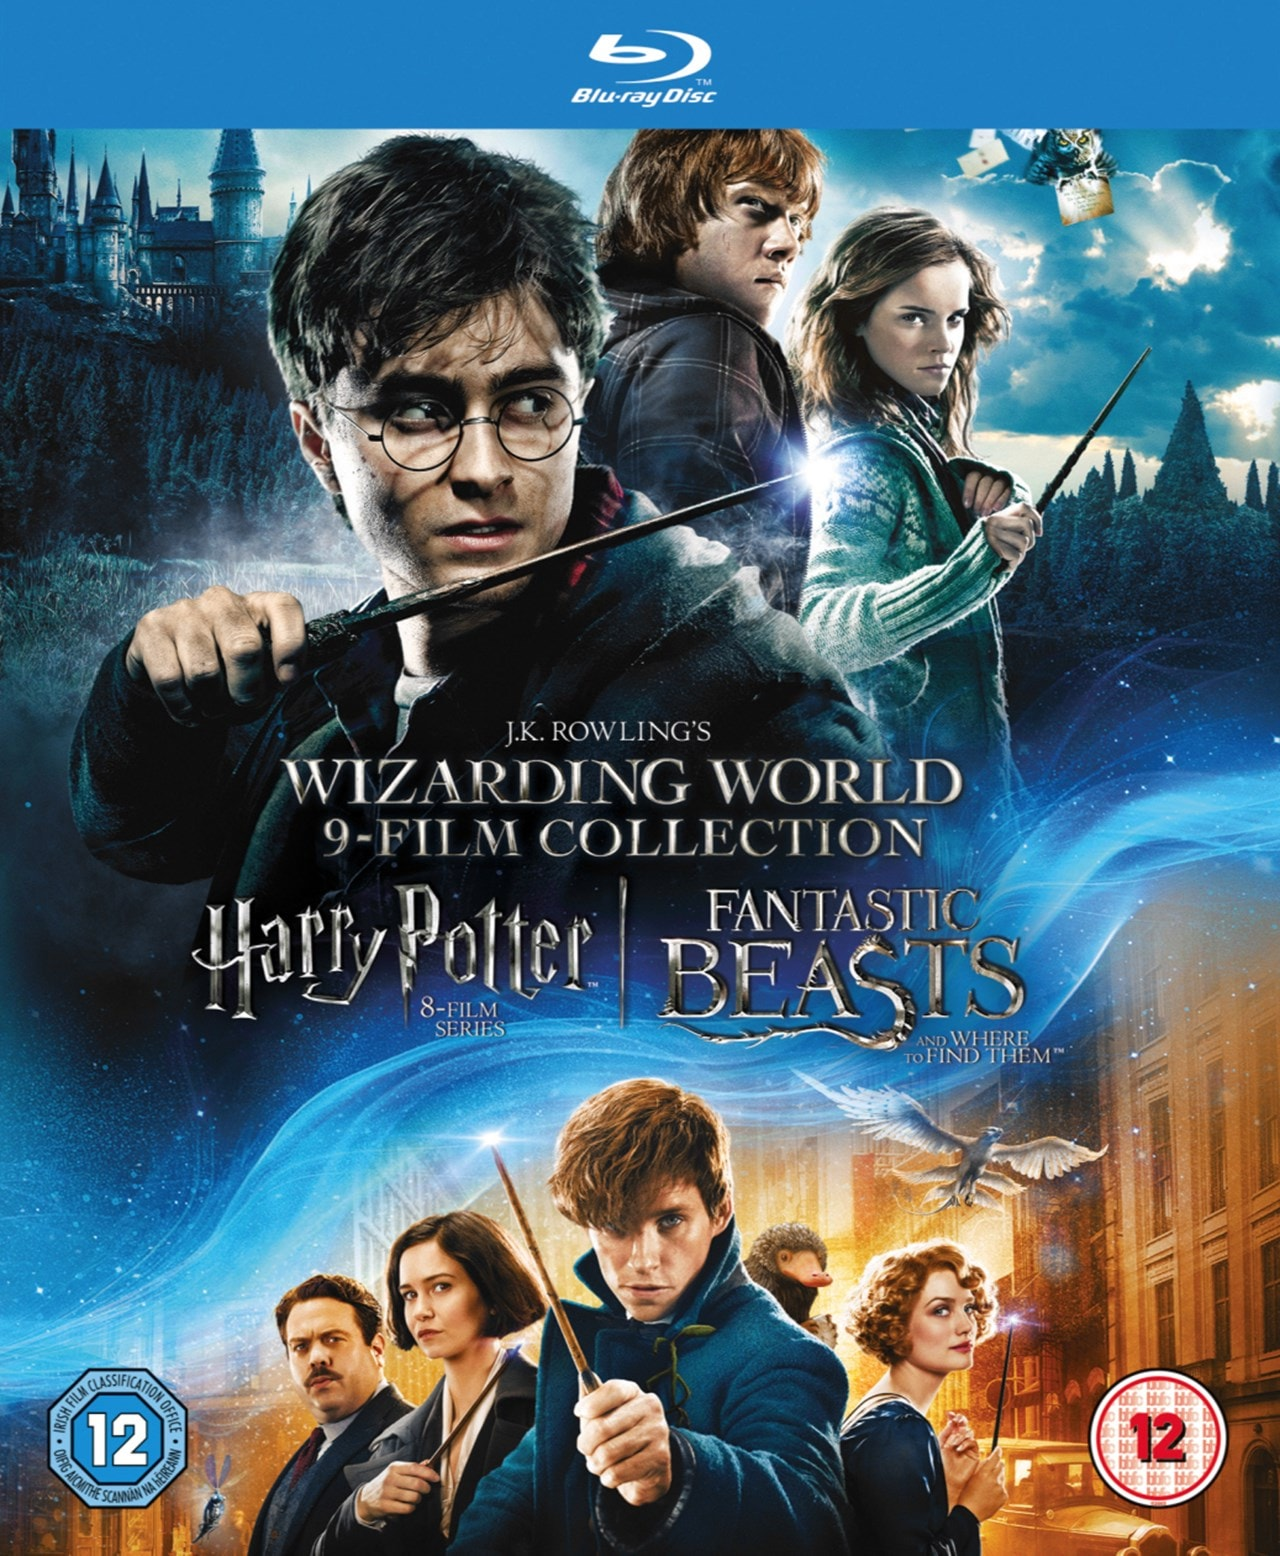 Wizarding World 9-film Collection - 1